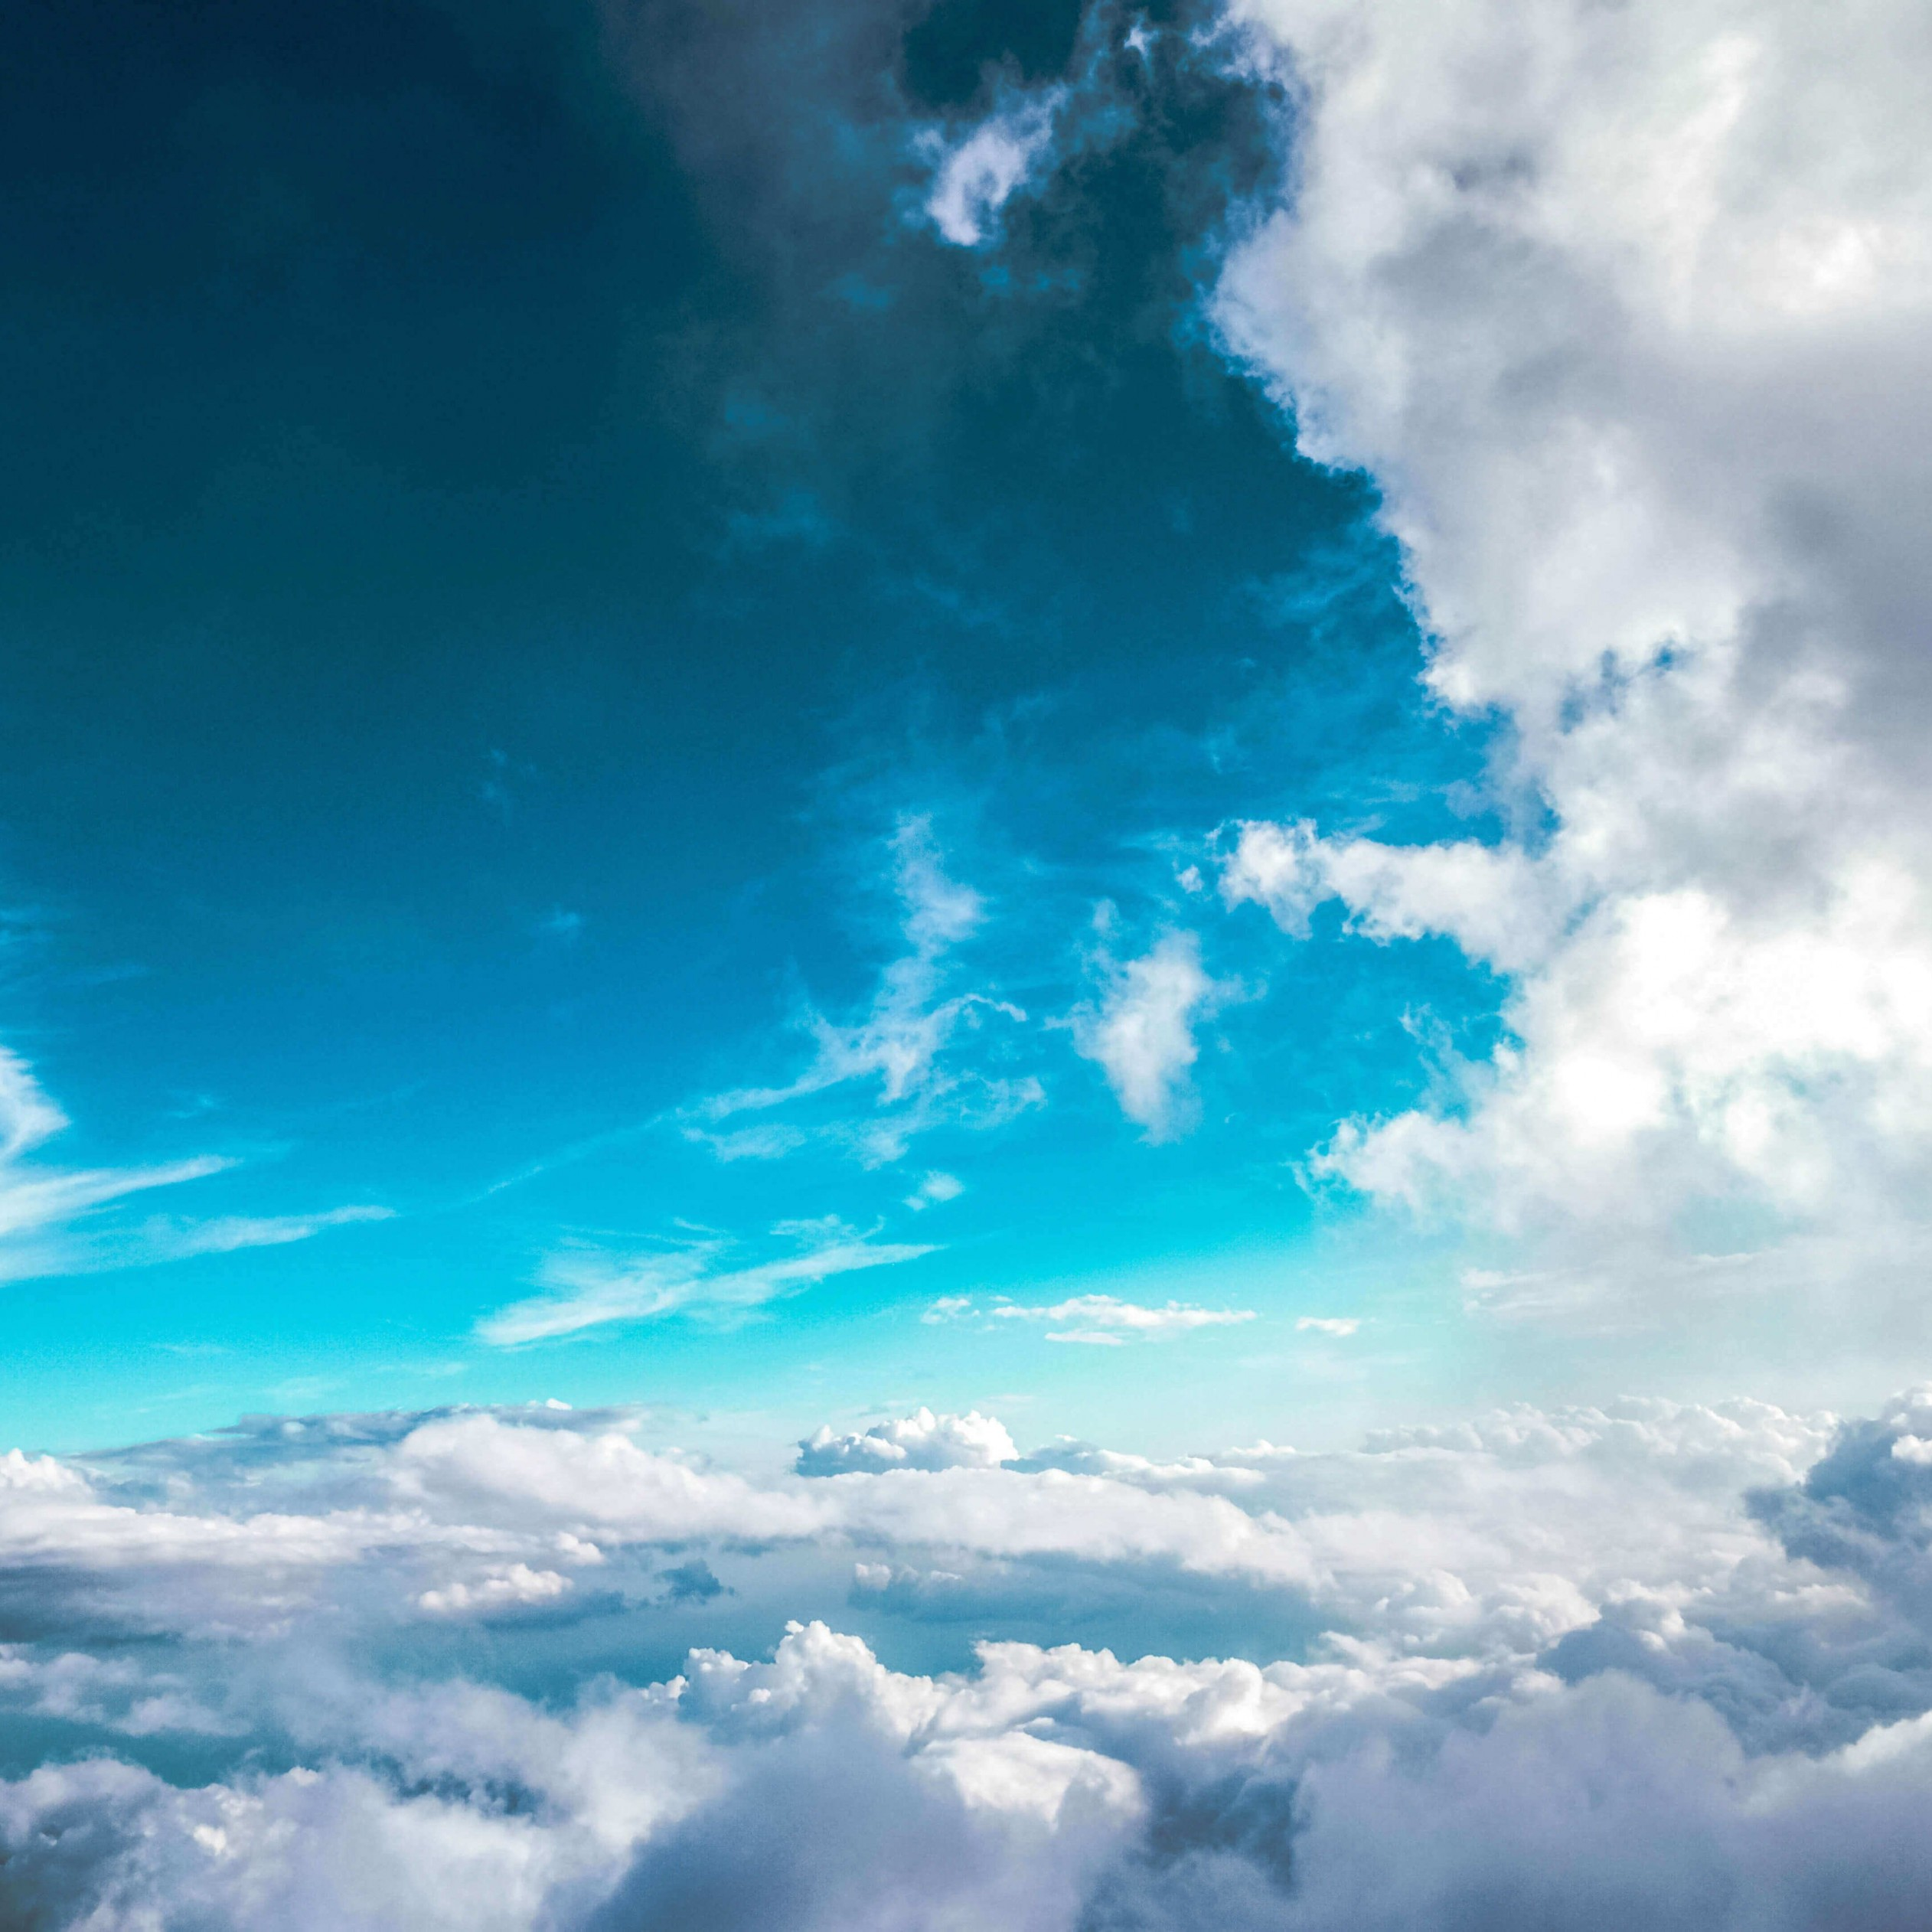 Cloudy Blue Sky Wallpaper for Apple iPad Air